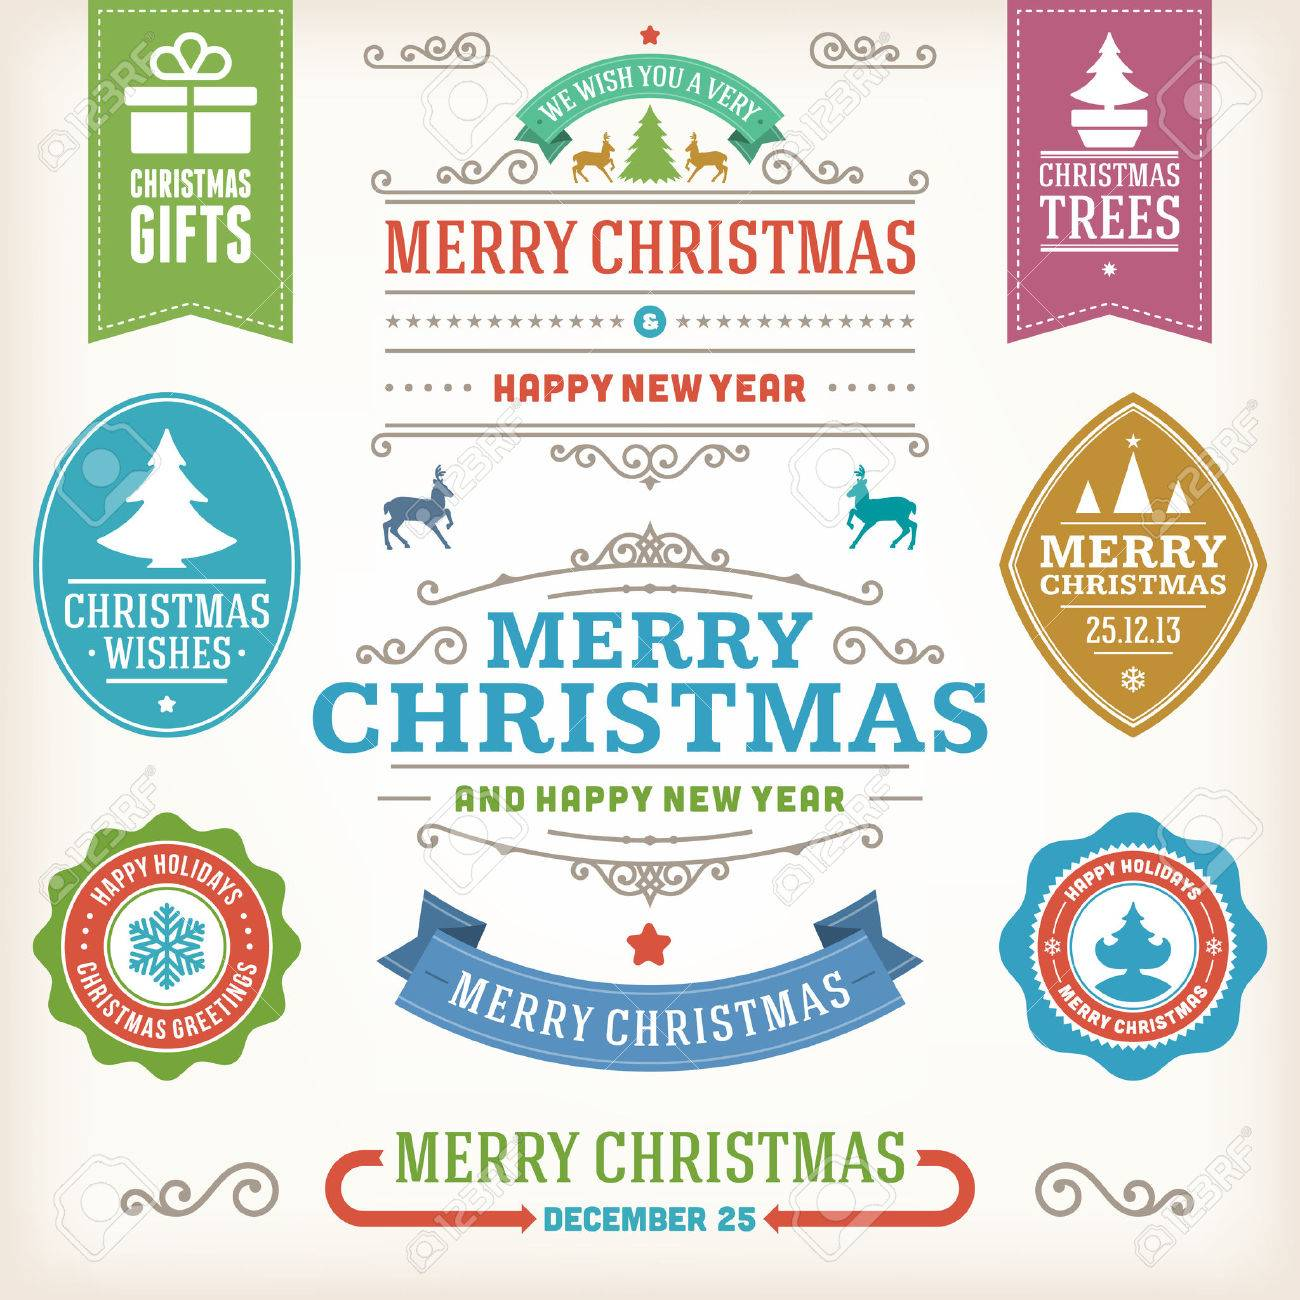 Christmas decoration vector design elements collection  Typographic elements, vintage labels, frames, ribbons, set  Flourishes calligraphic Stock Vector - 23213895